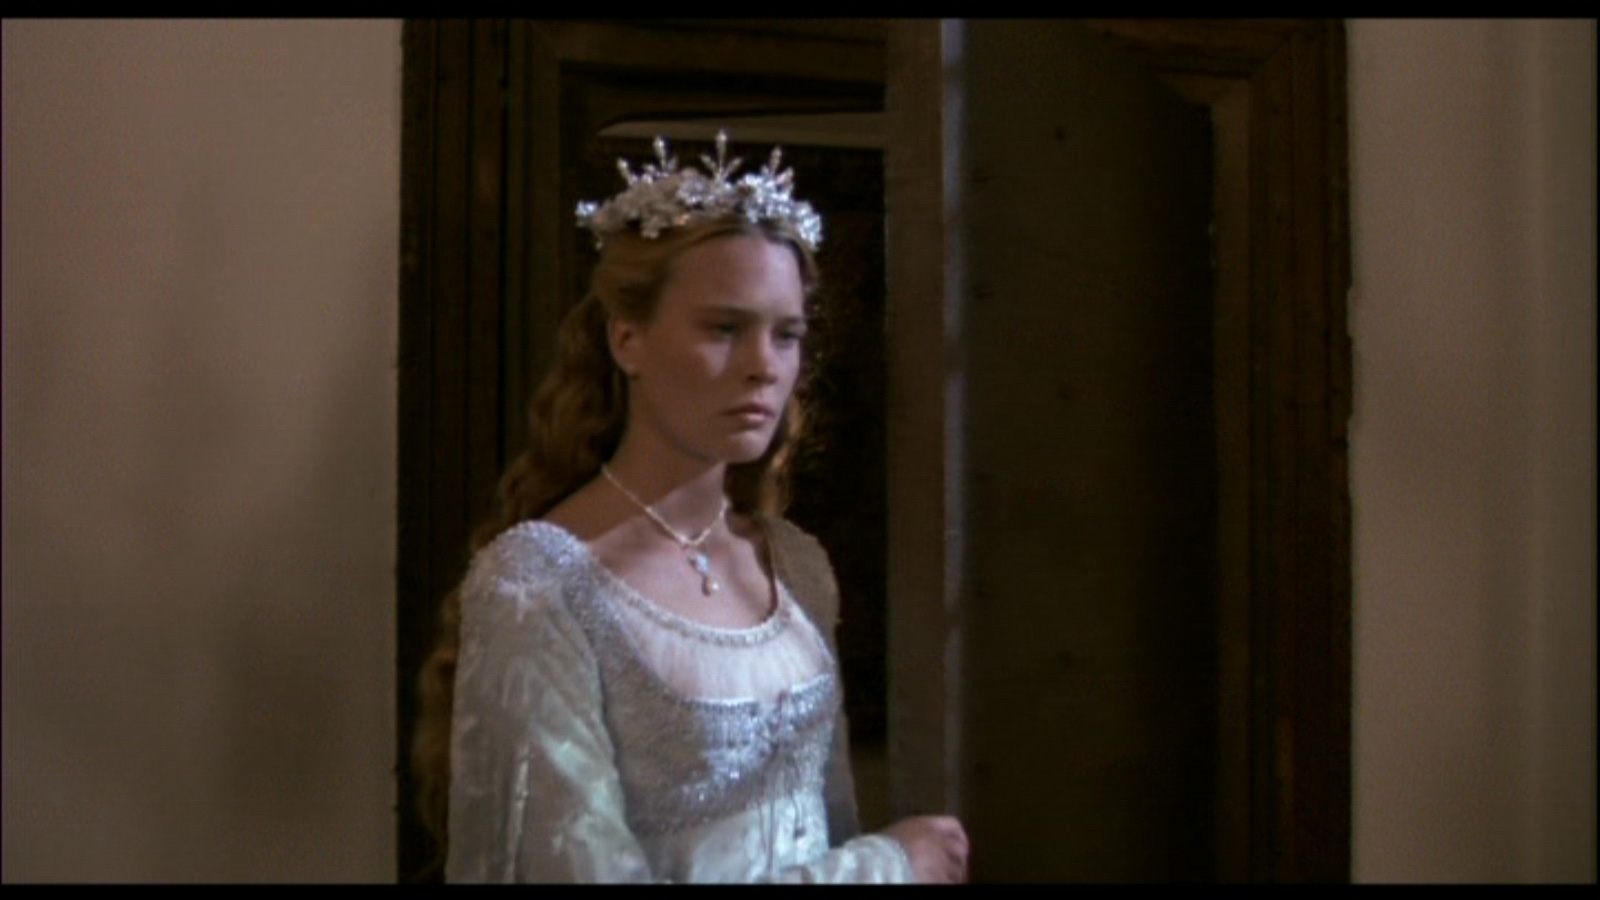 The Story of a Seamstress: The Princess Bride Wedding Dress